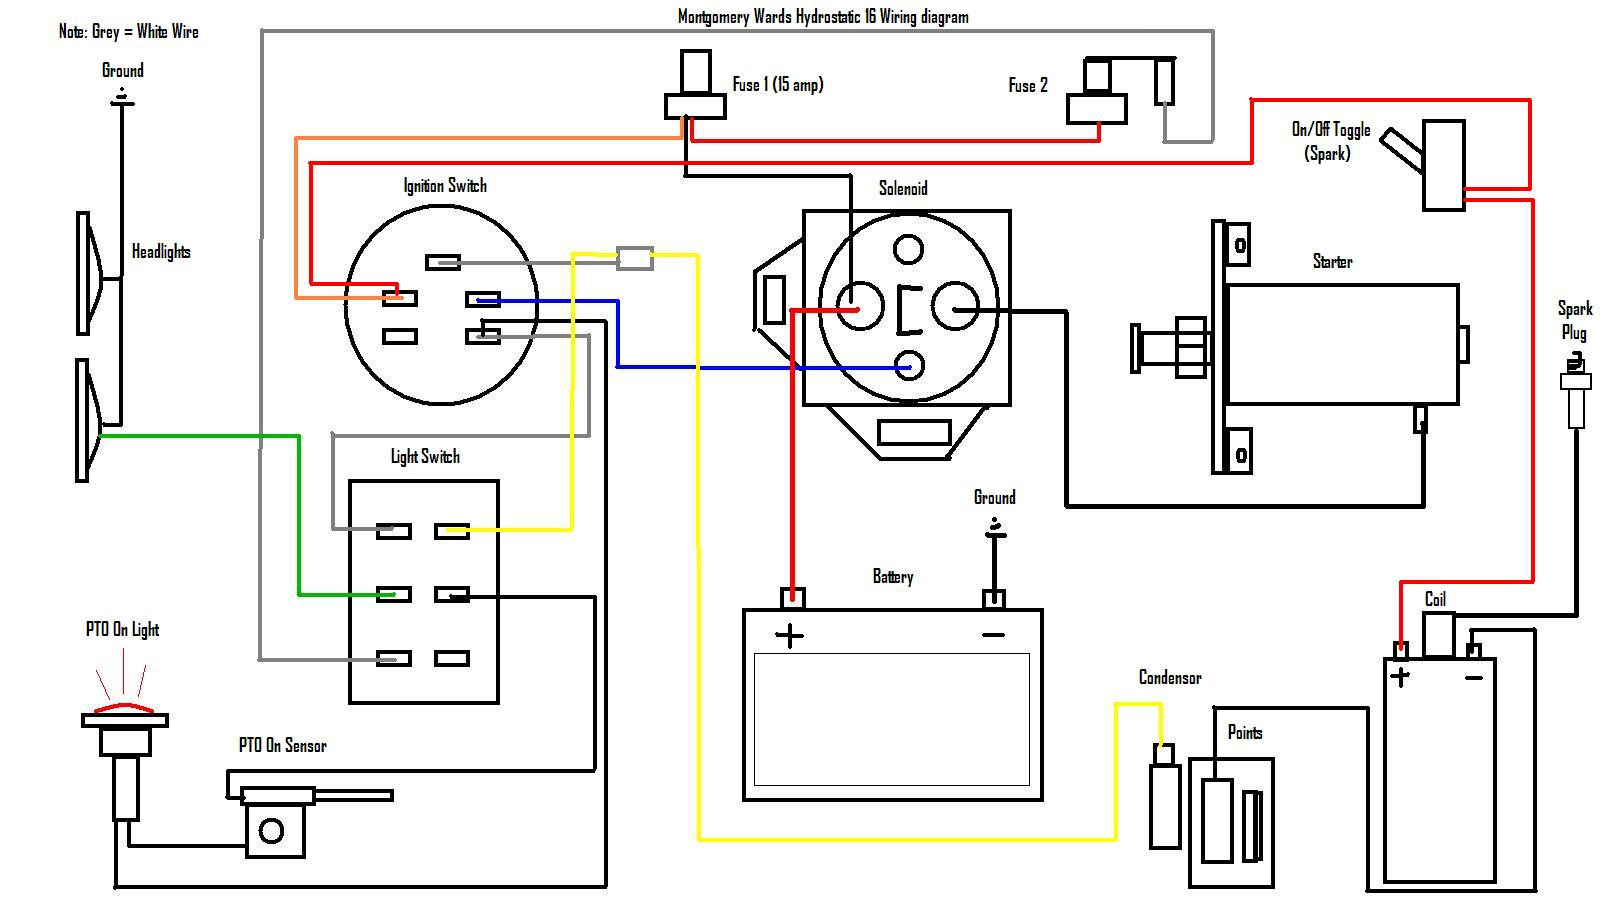 3020 Wiring John Deere Forum Yesterdays Tractors readingratnet – John Deere Model G Wiring Diagram